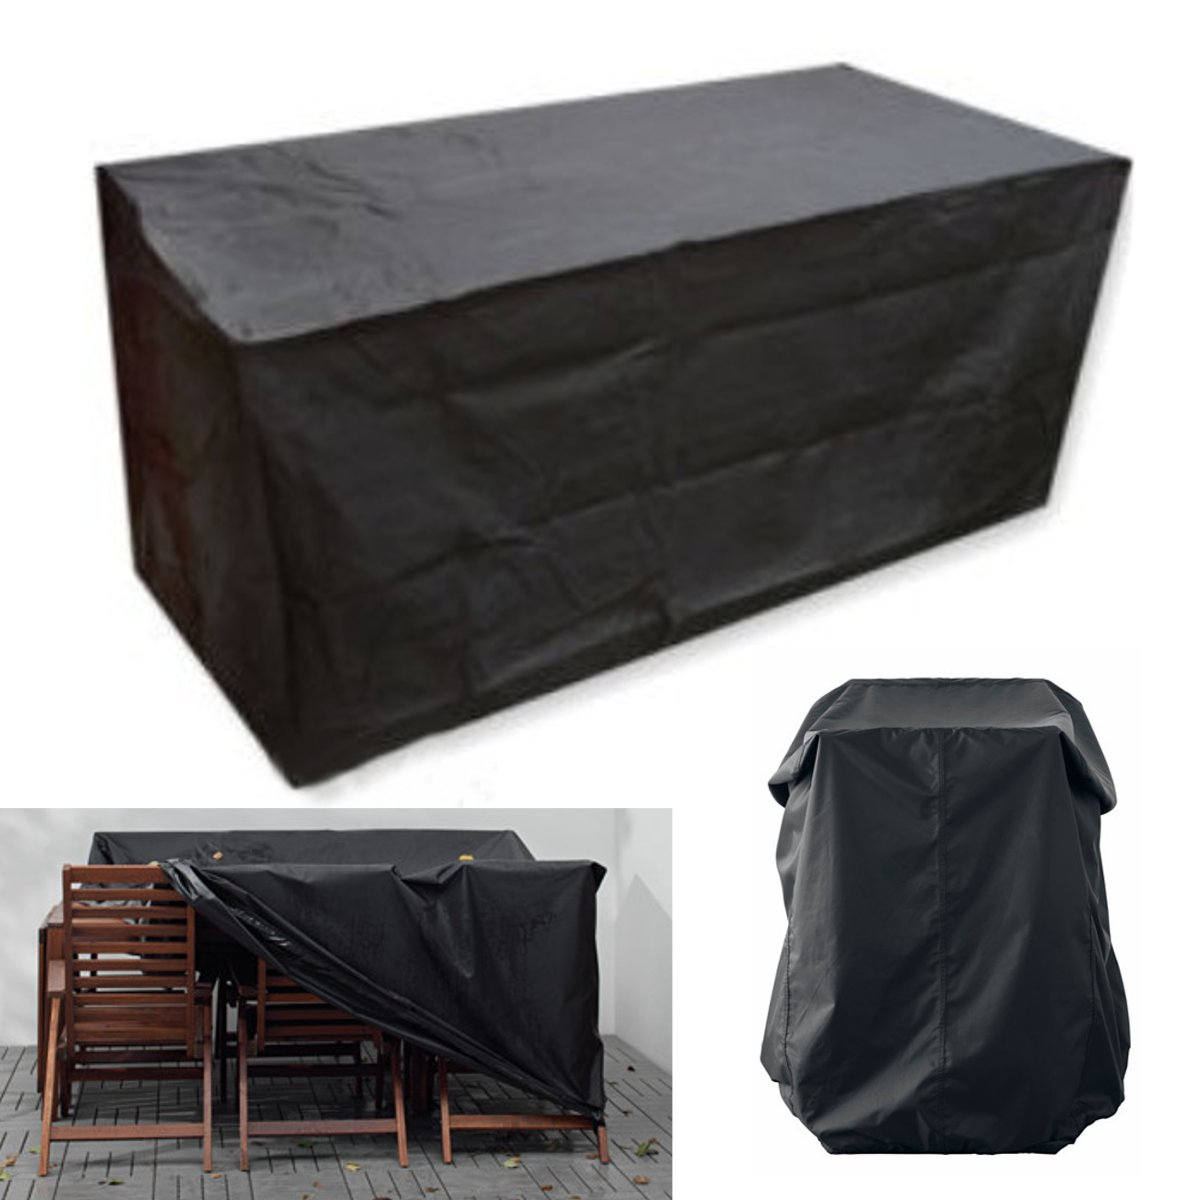 IPRee™ 4FT 123x61x72CM Outdoor Trestle Table Anti-dust Cover Waterproof Desk Chair Protector